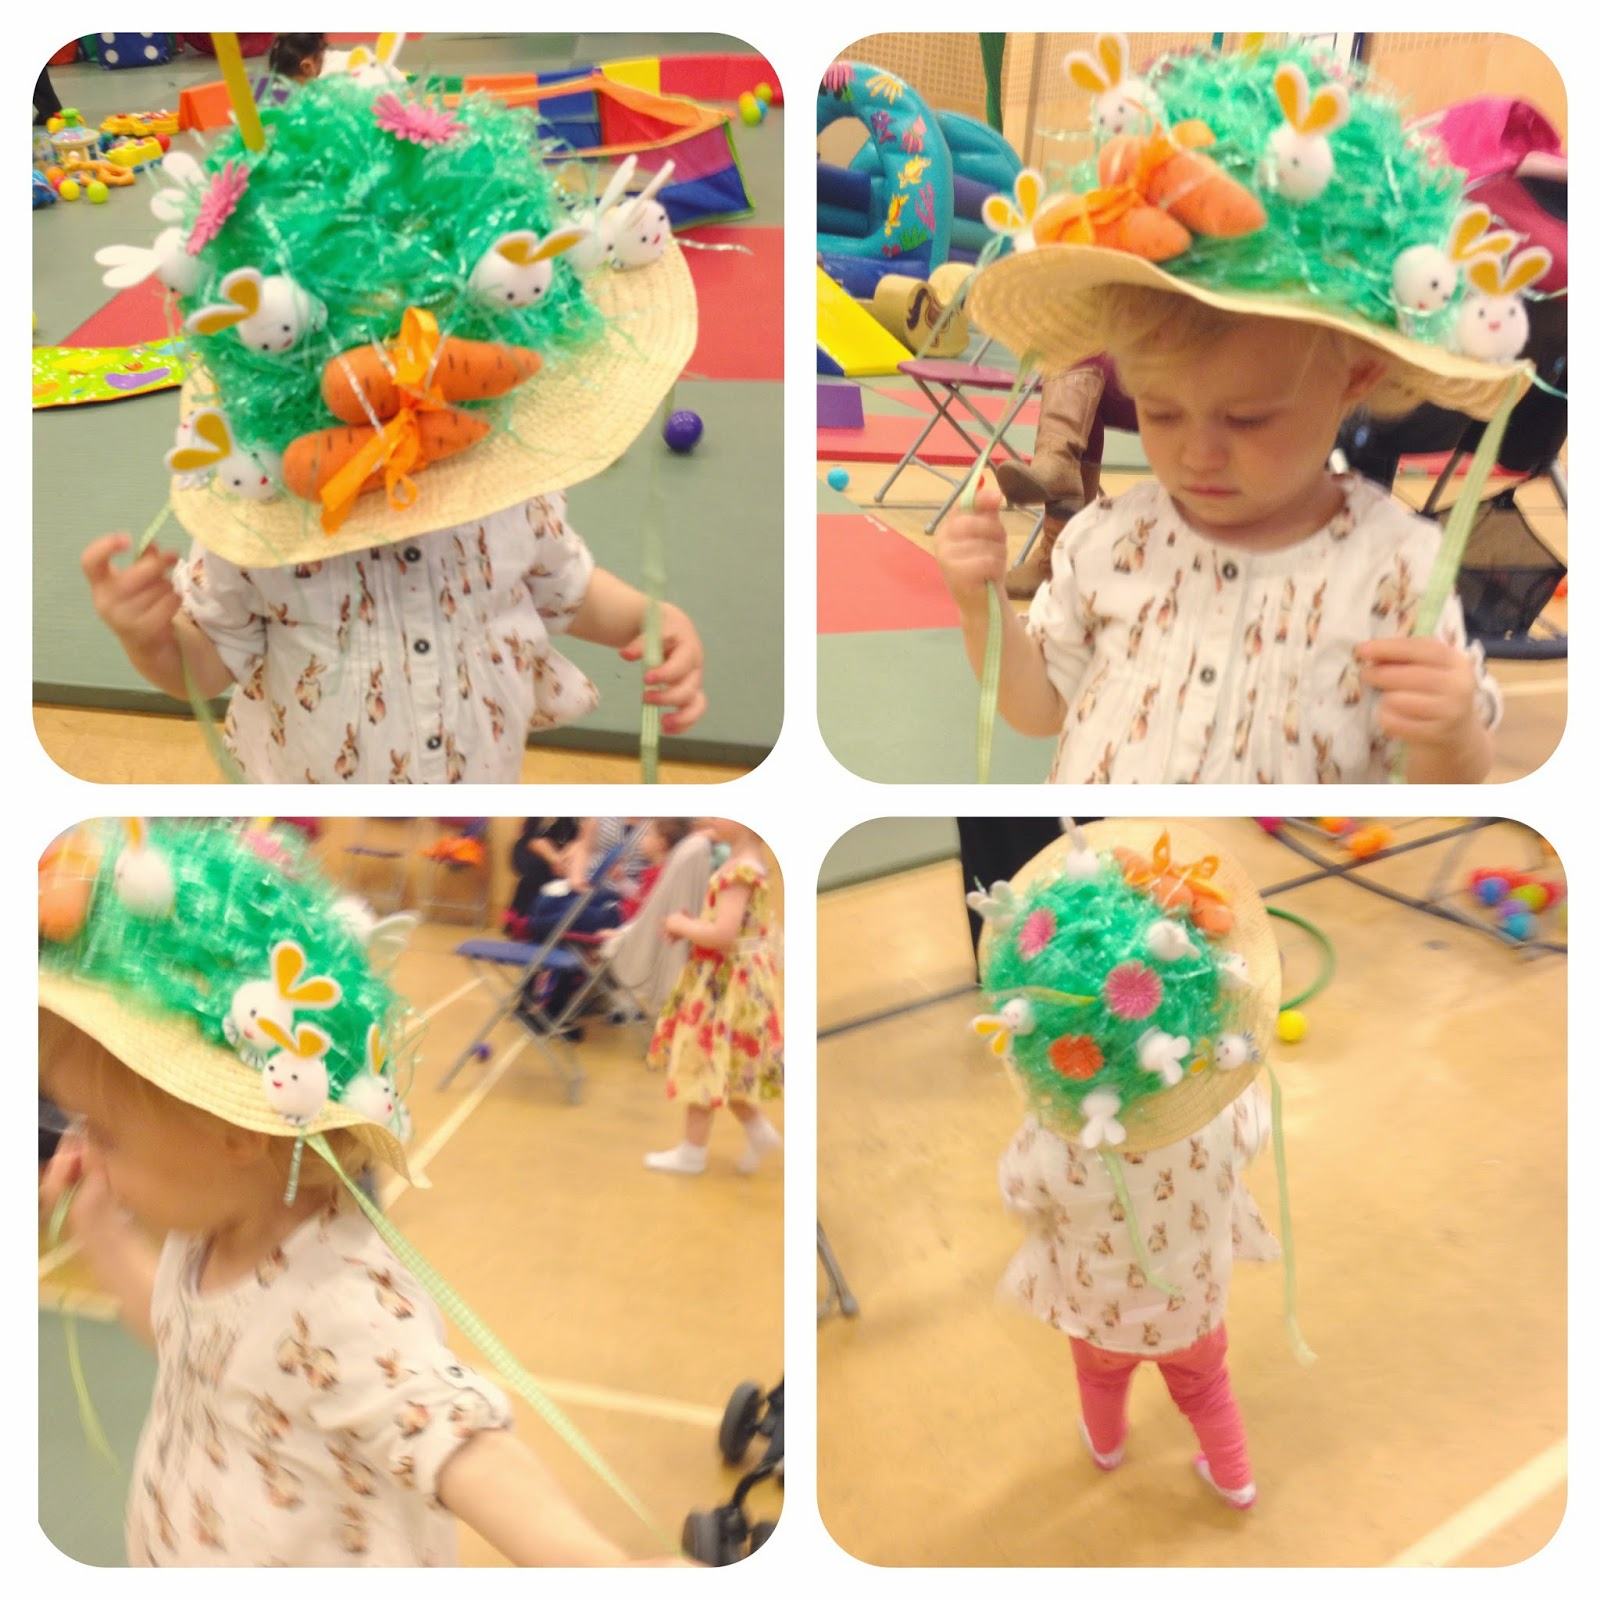 mamasVIB | V. I. BUYS: Welcome to #mamamondays… Muddy Puddles, Easter bonnets and Disneyland Paris! | mamamondays | blg | disneyland paris | muddy puddles | flying a kite | muddy life | outside fun | weekend play | crafting | easter | make an easter bonnet | mamasVIB